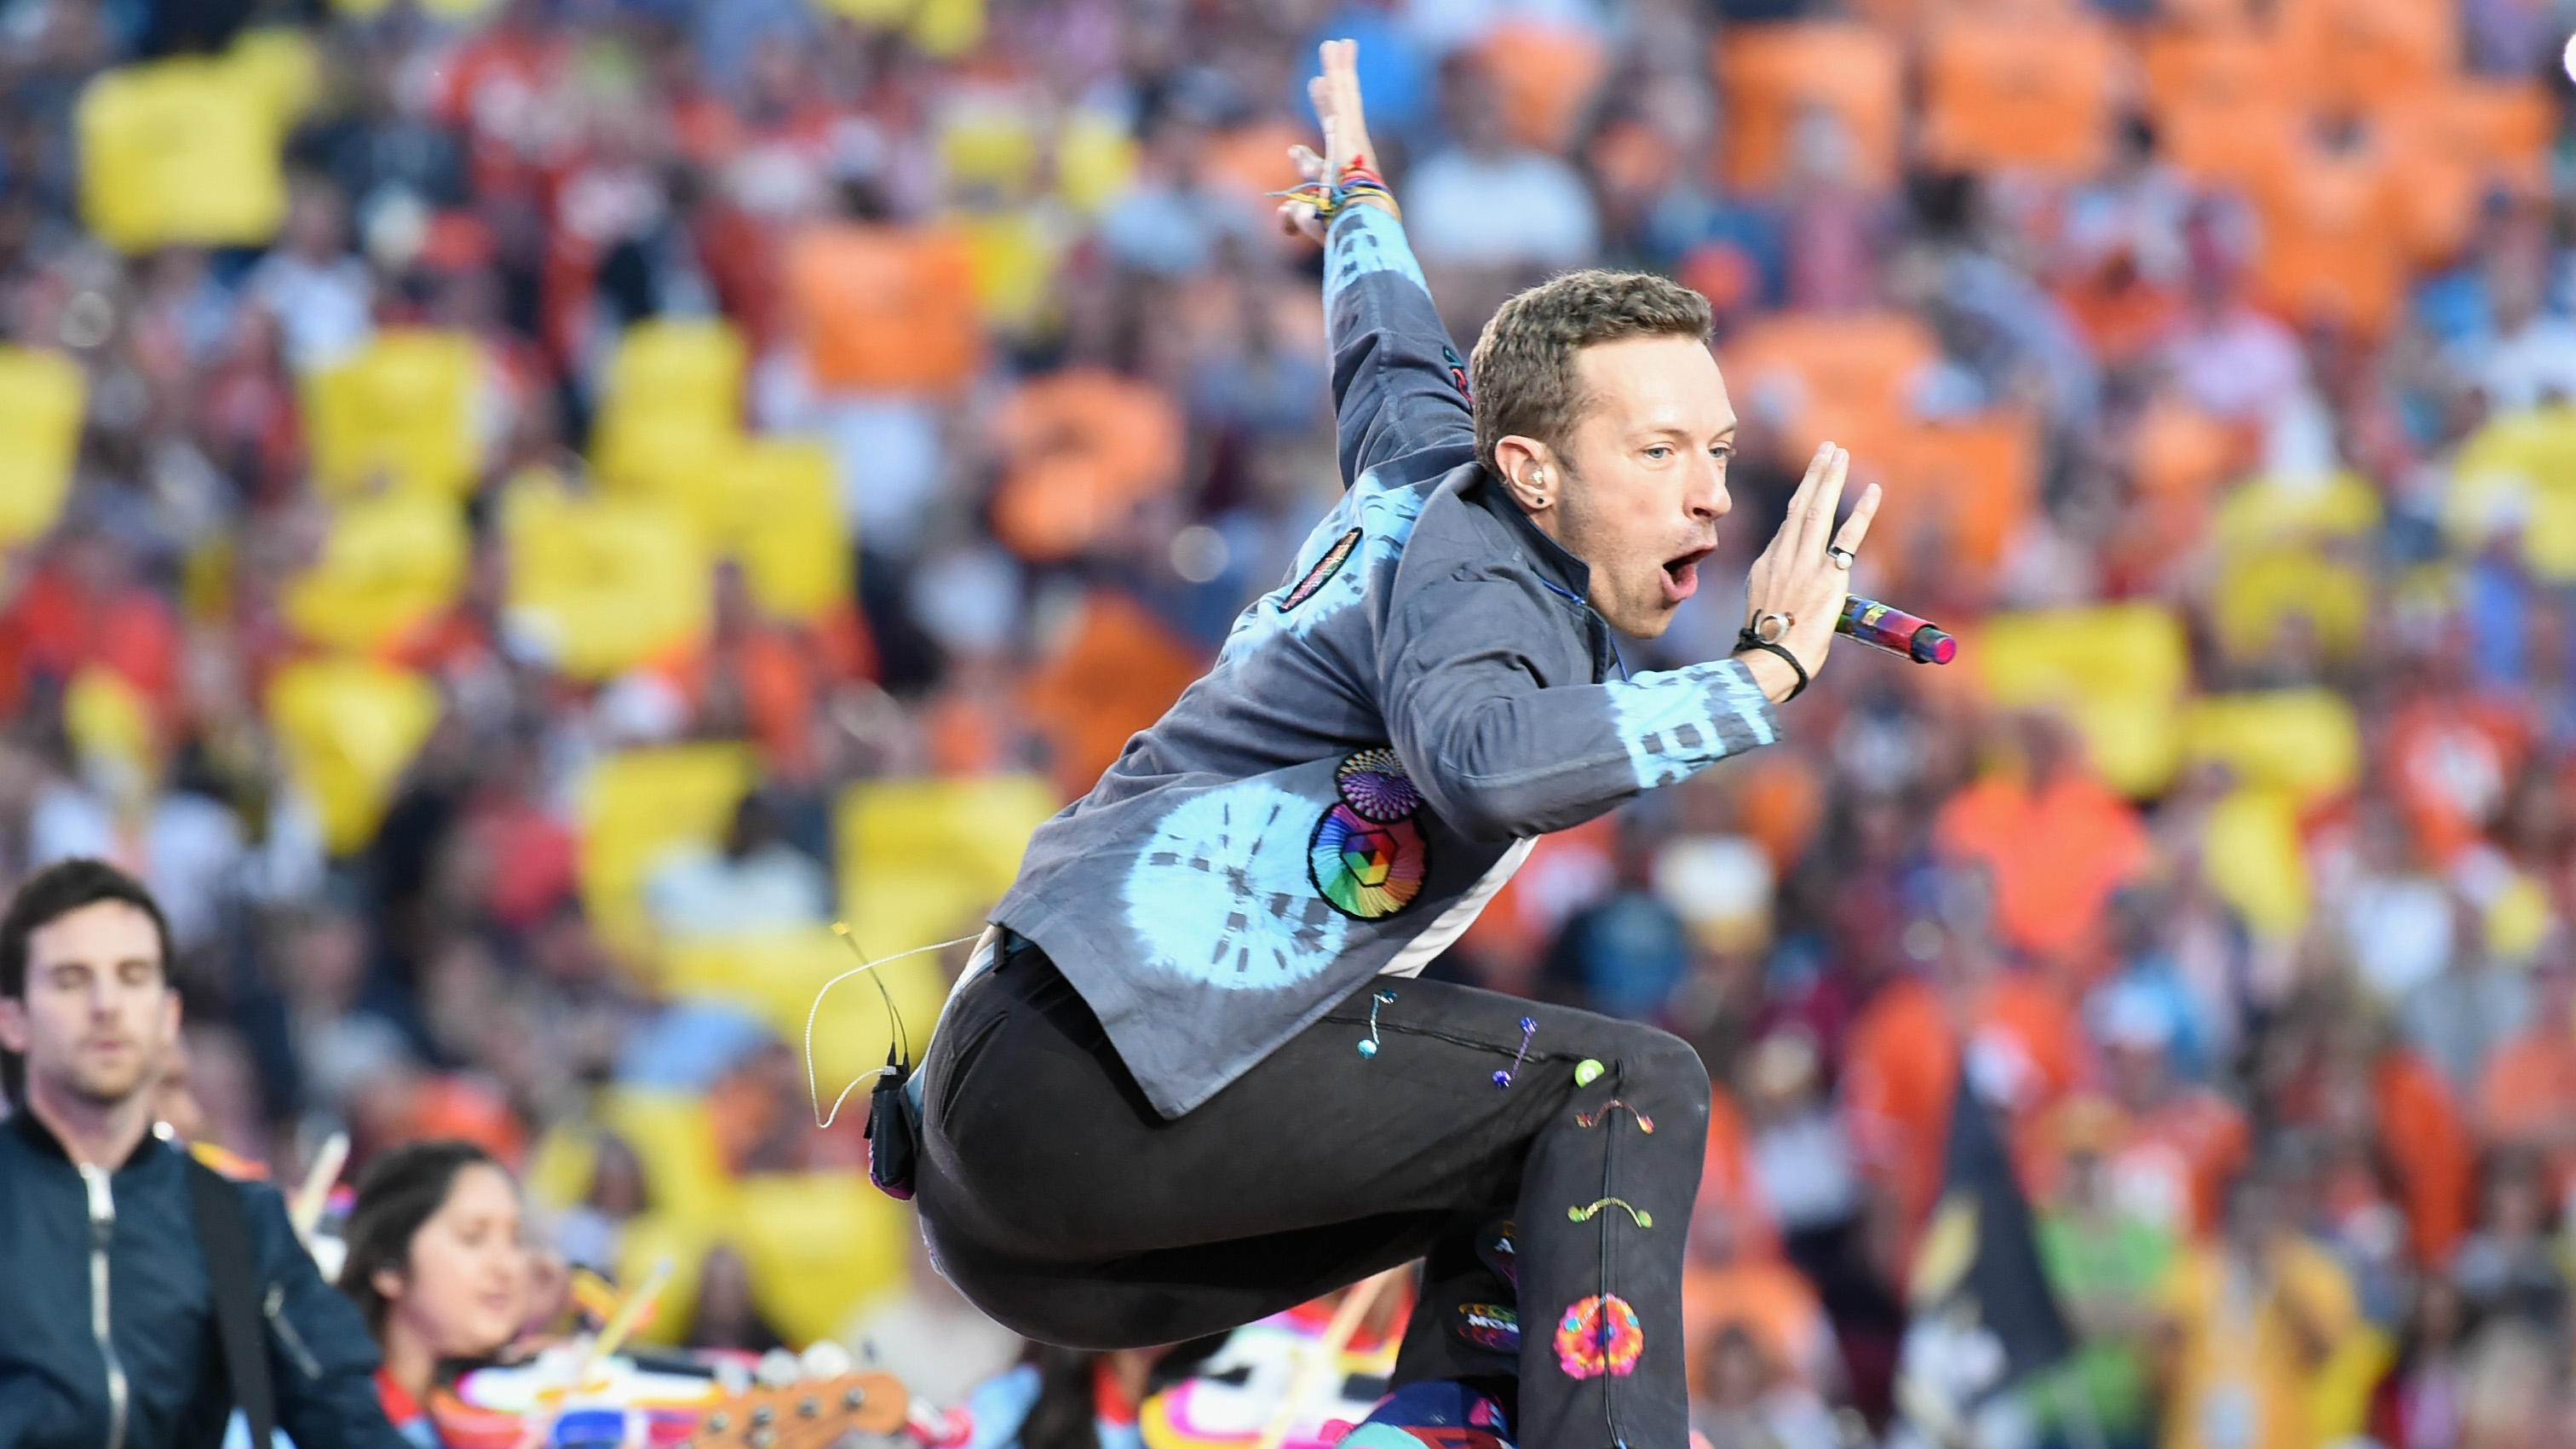 Coldplay Will Take A Head Full of Dreams Tour Into 2017